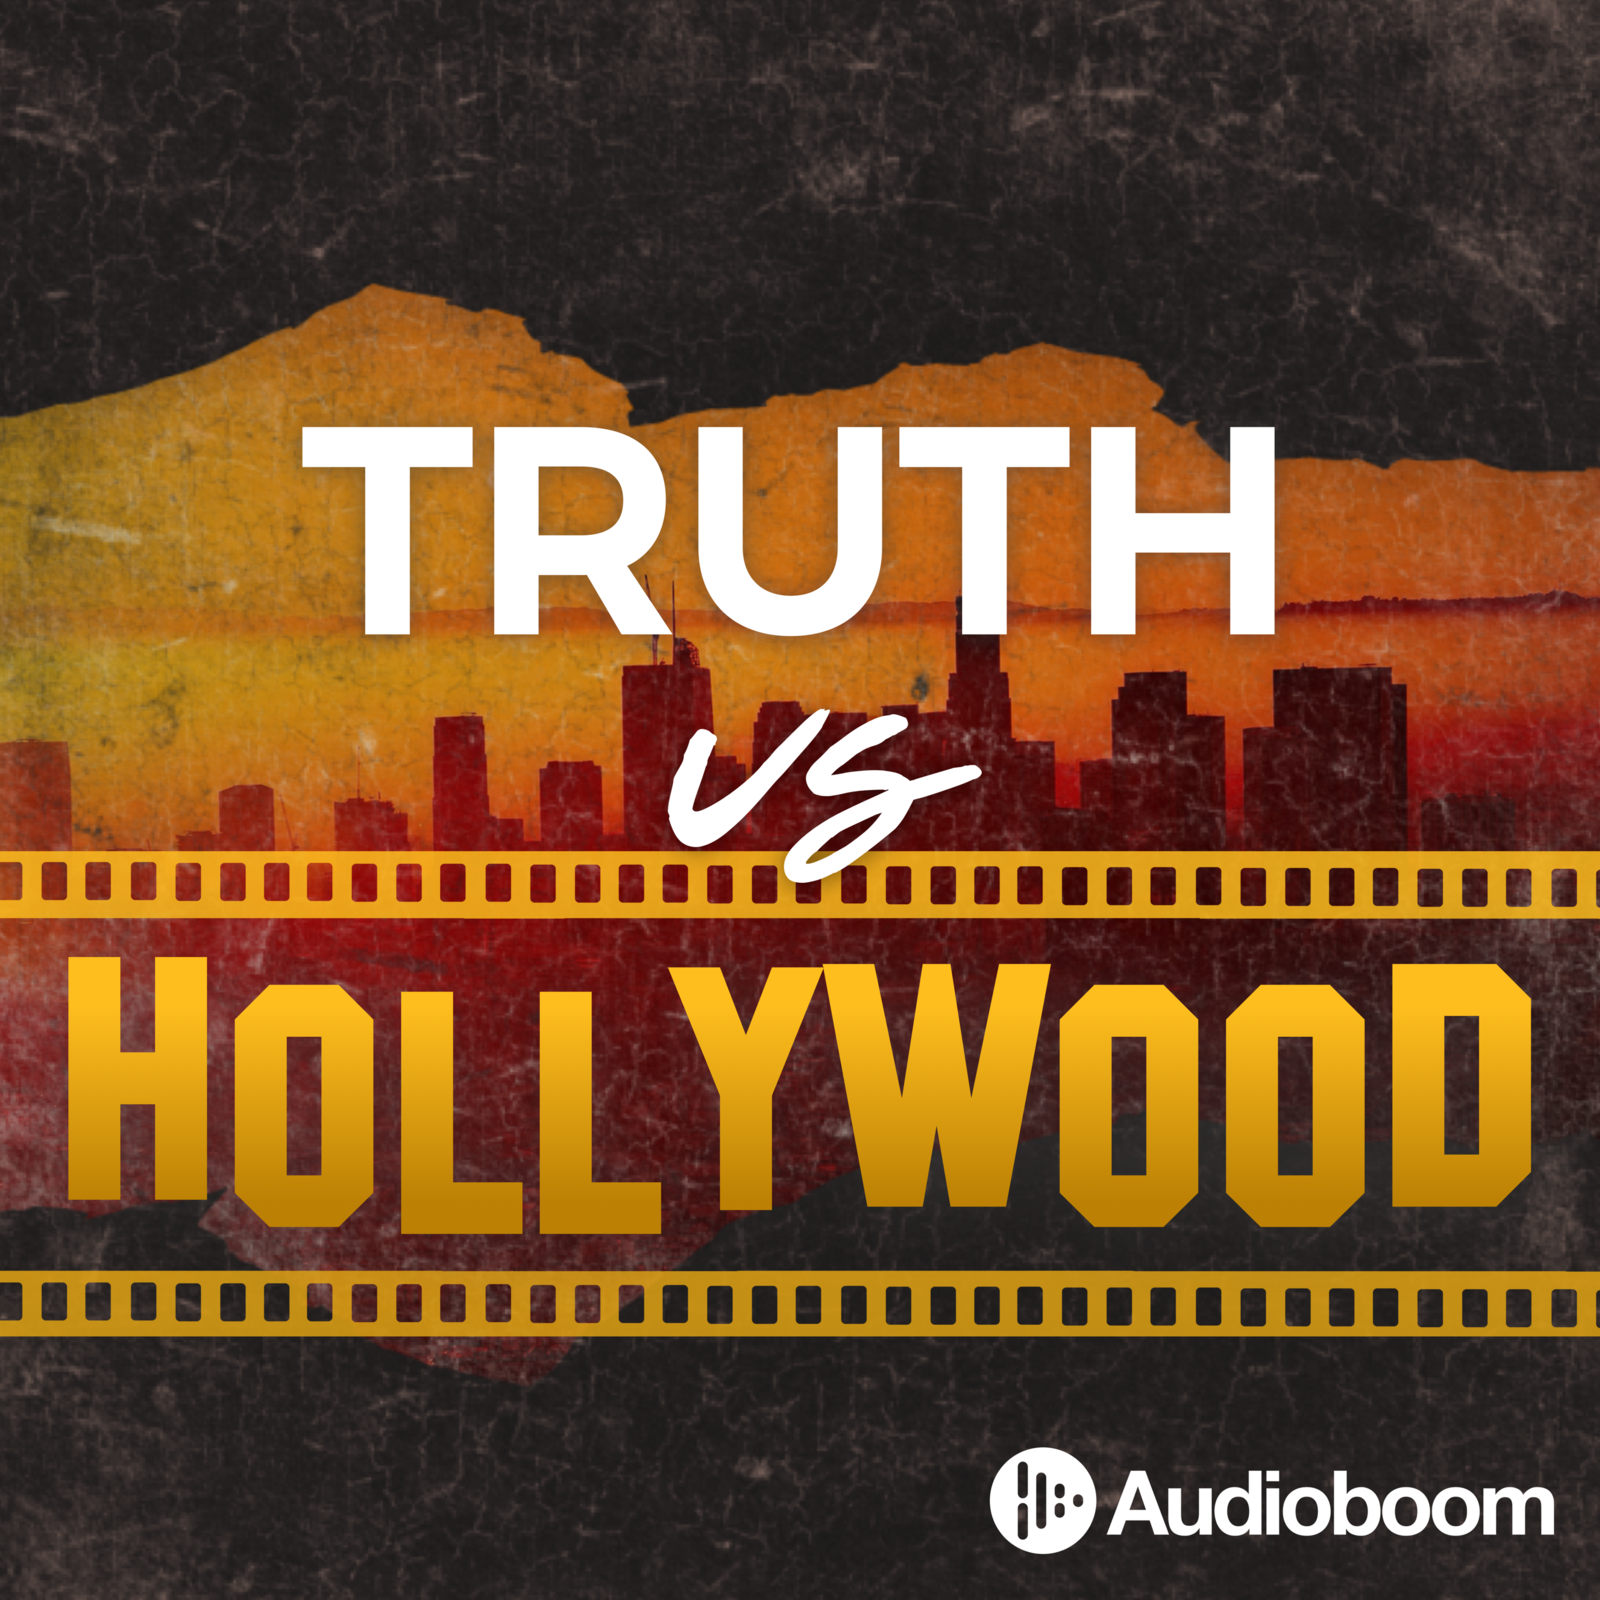 Introducing: Truth vs Hollywood